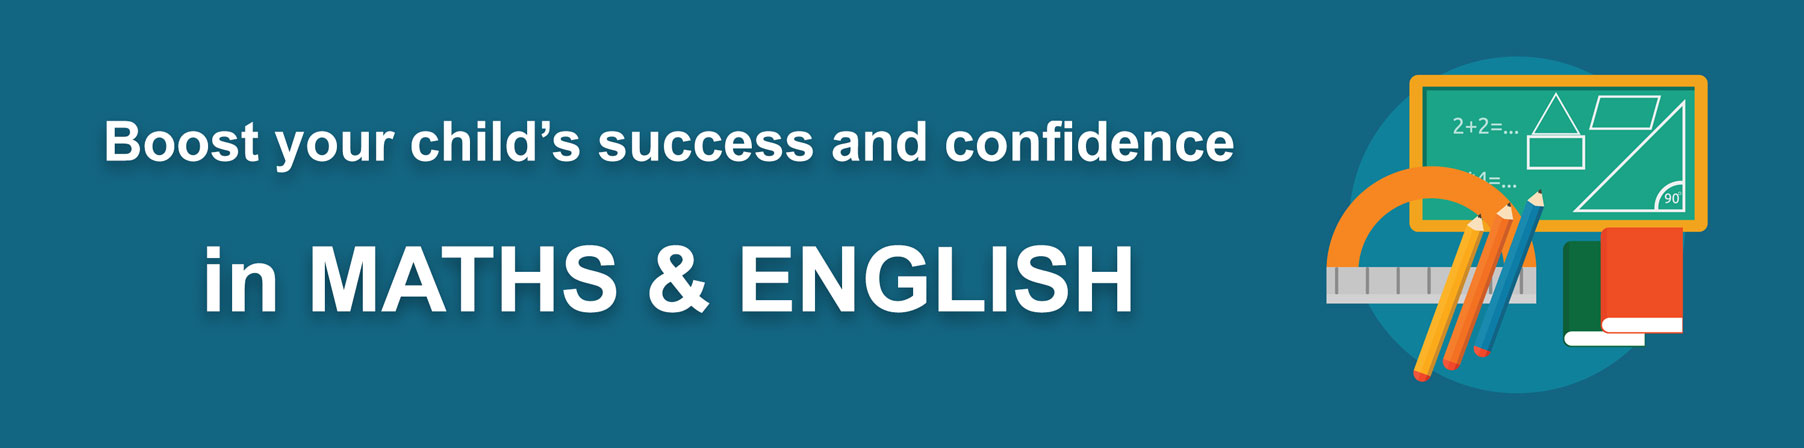 Cambridge maths tutors and Cambridge maths tuition